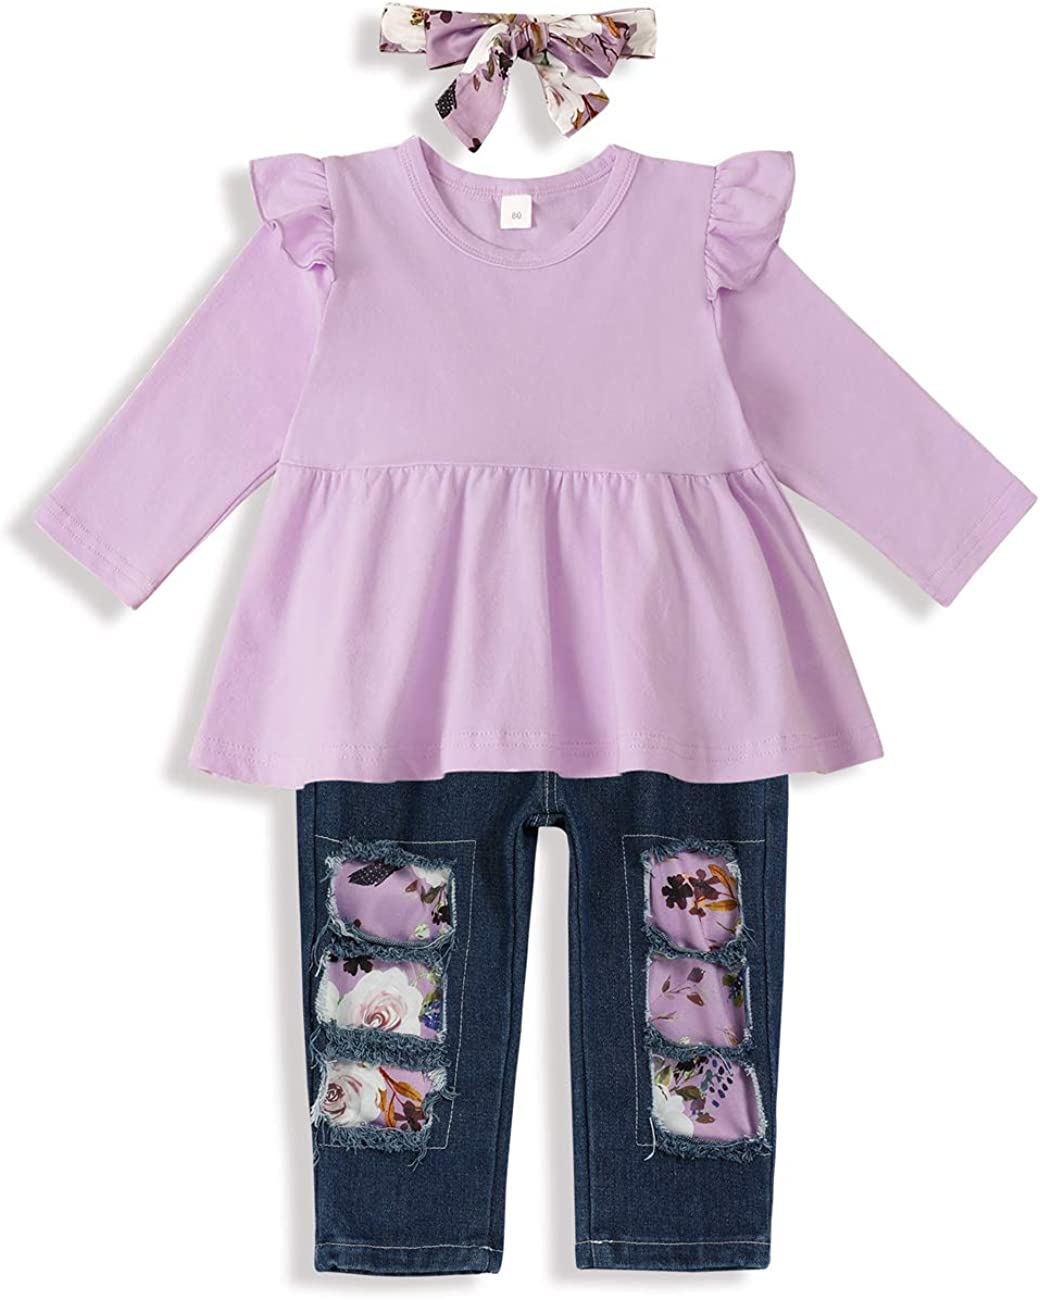 Gavol Toddler Baby Girl Clothes Solid Color Ruffle Top+Floral Ripped Jeans with Headband Baby Girl Outfit Sets